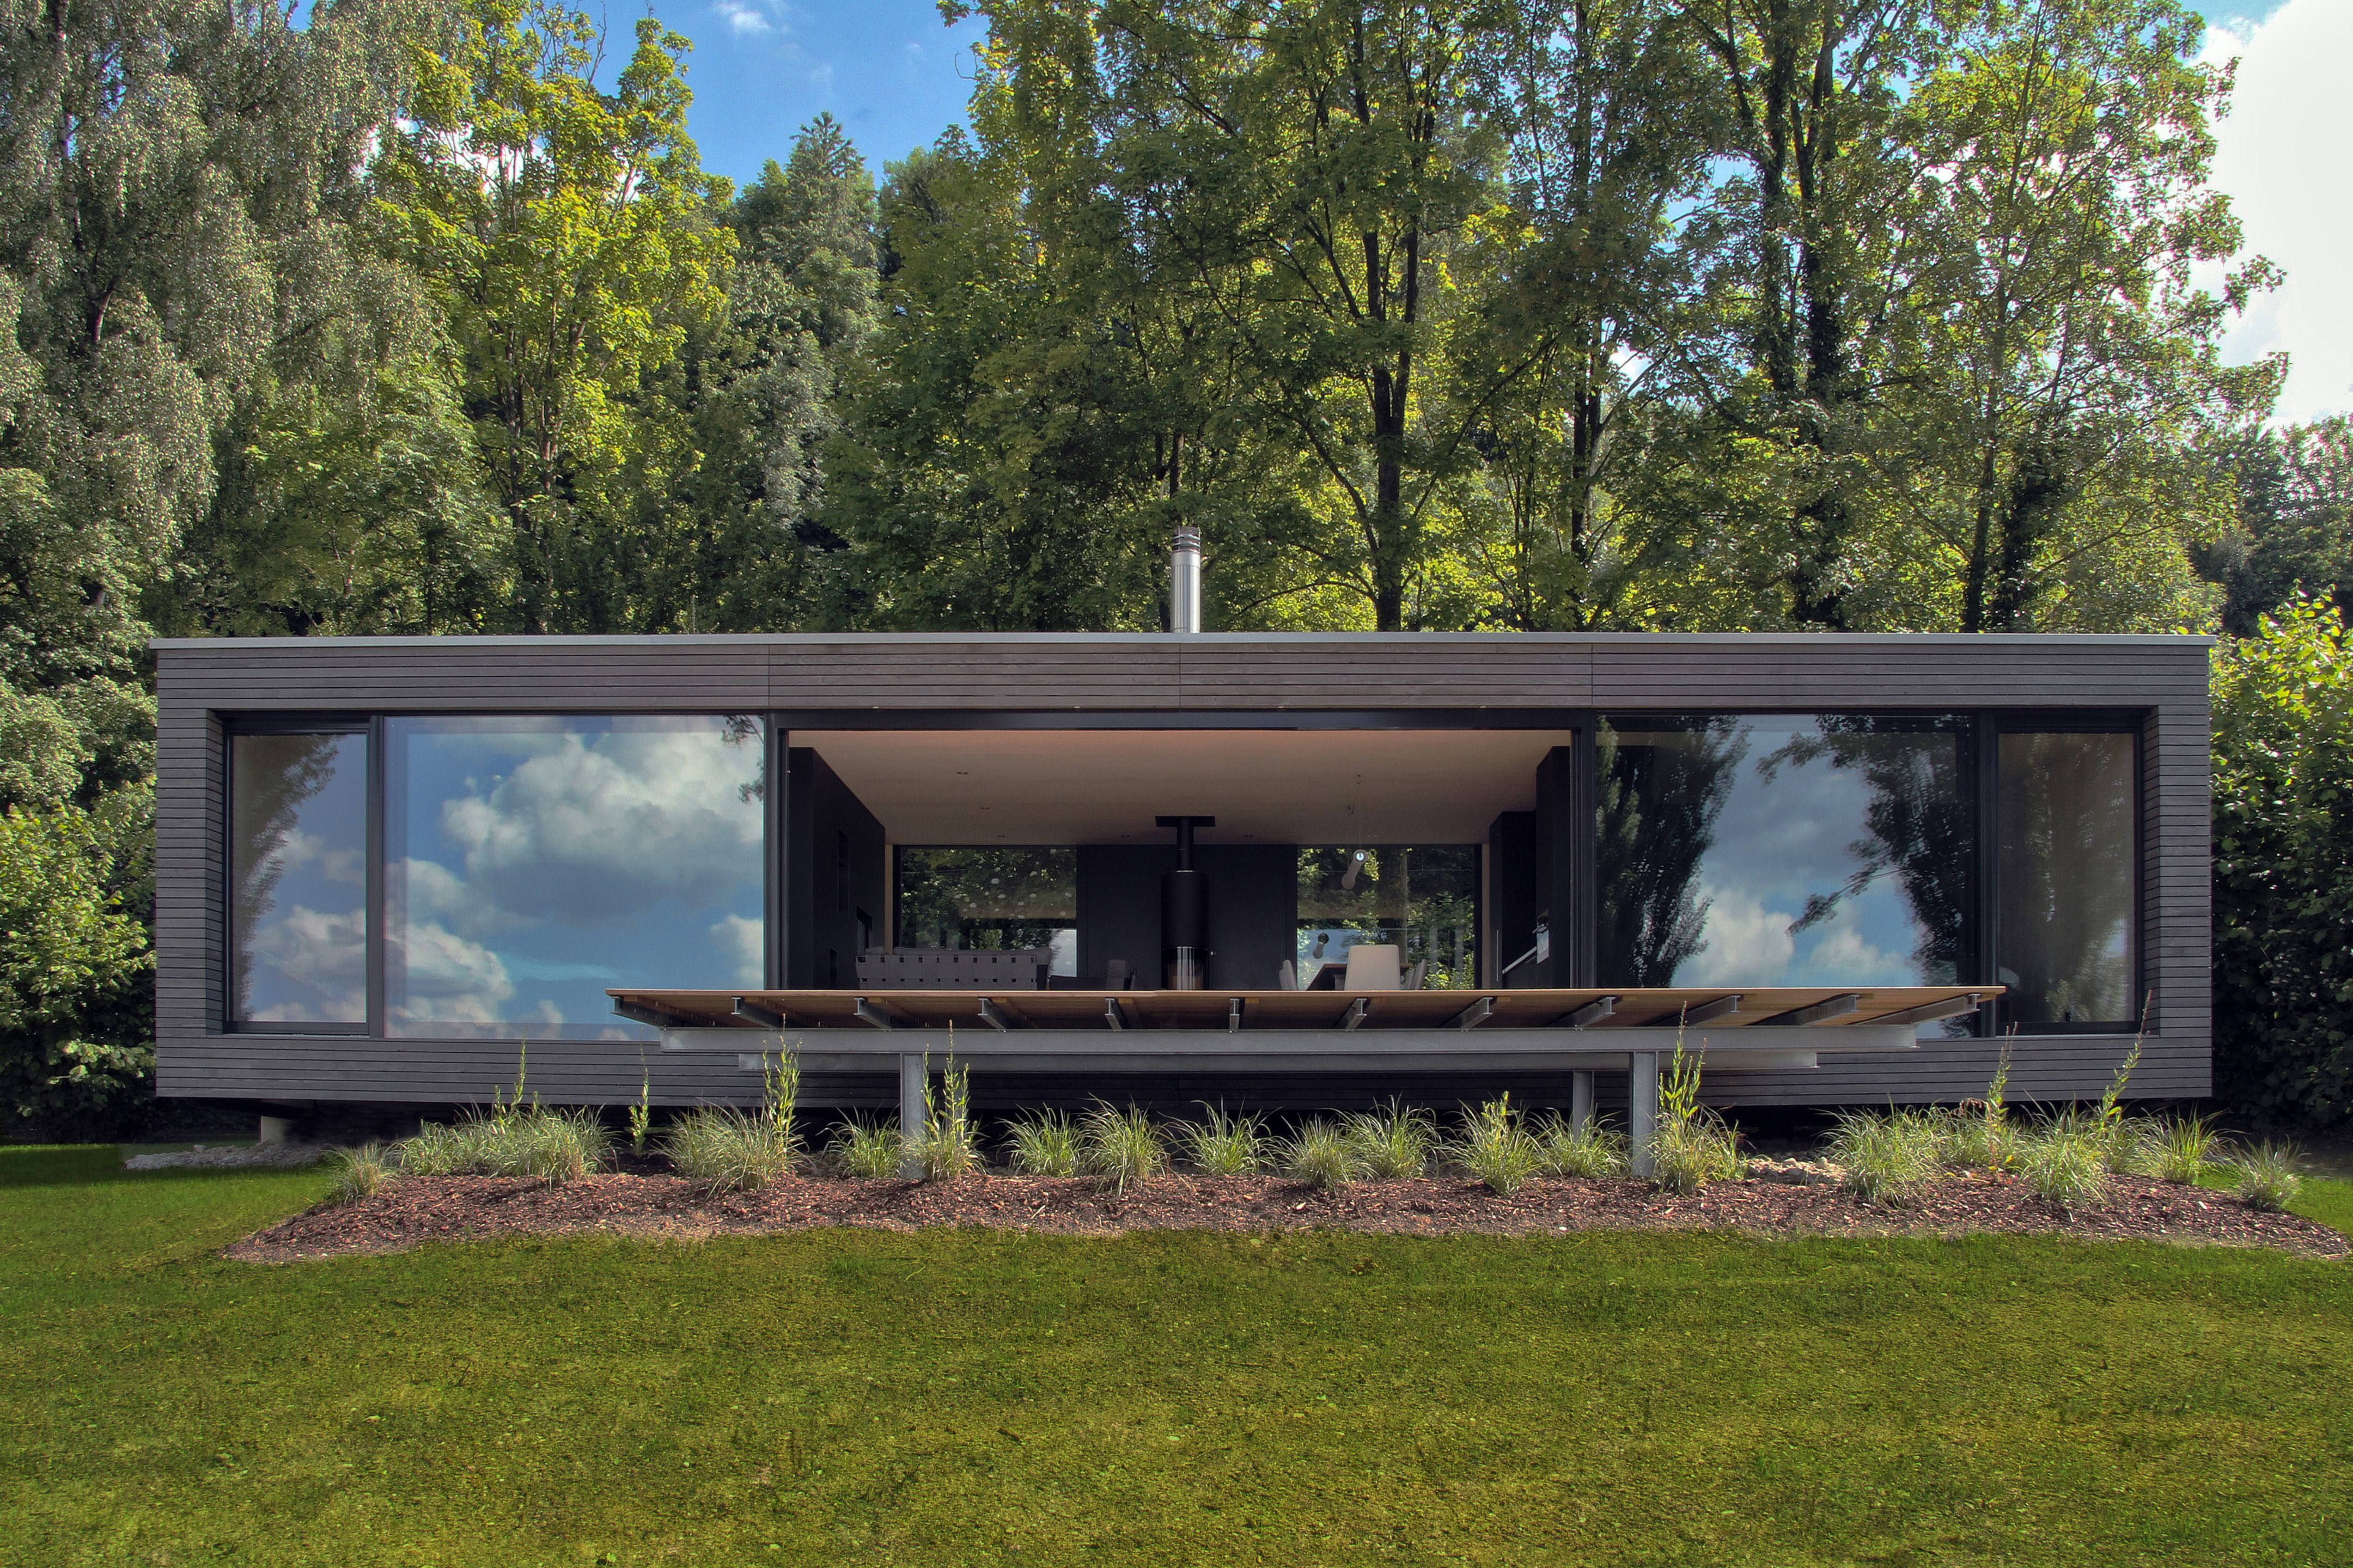 Ferienhaus Am See Picture gallery in 2020